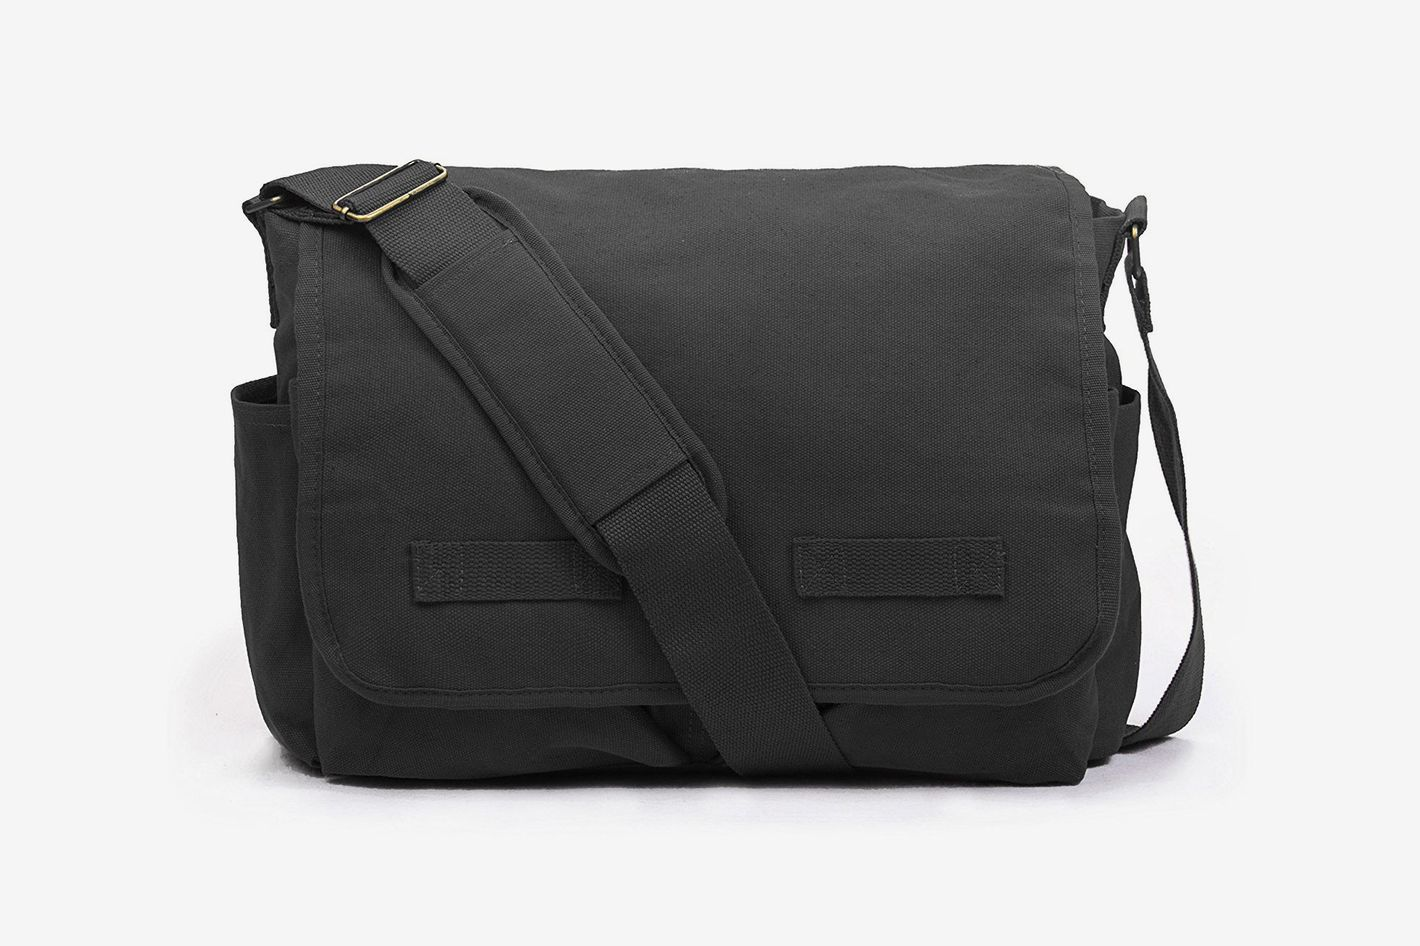 00351cd525be 11 Best Messenger Bags for Men 2018